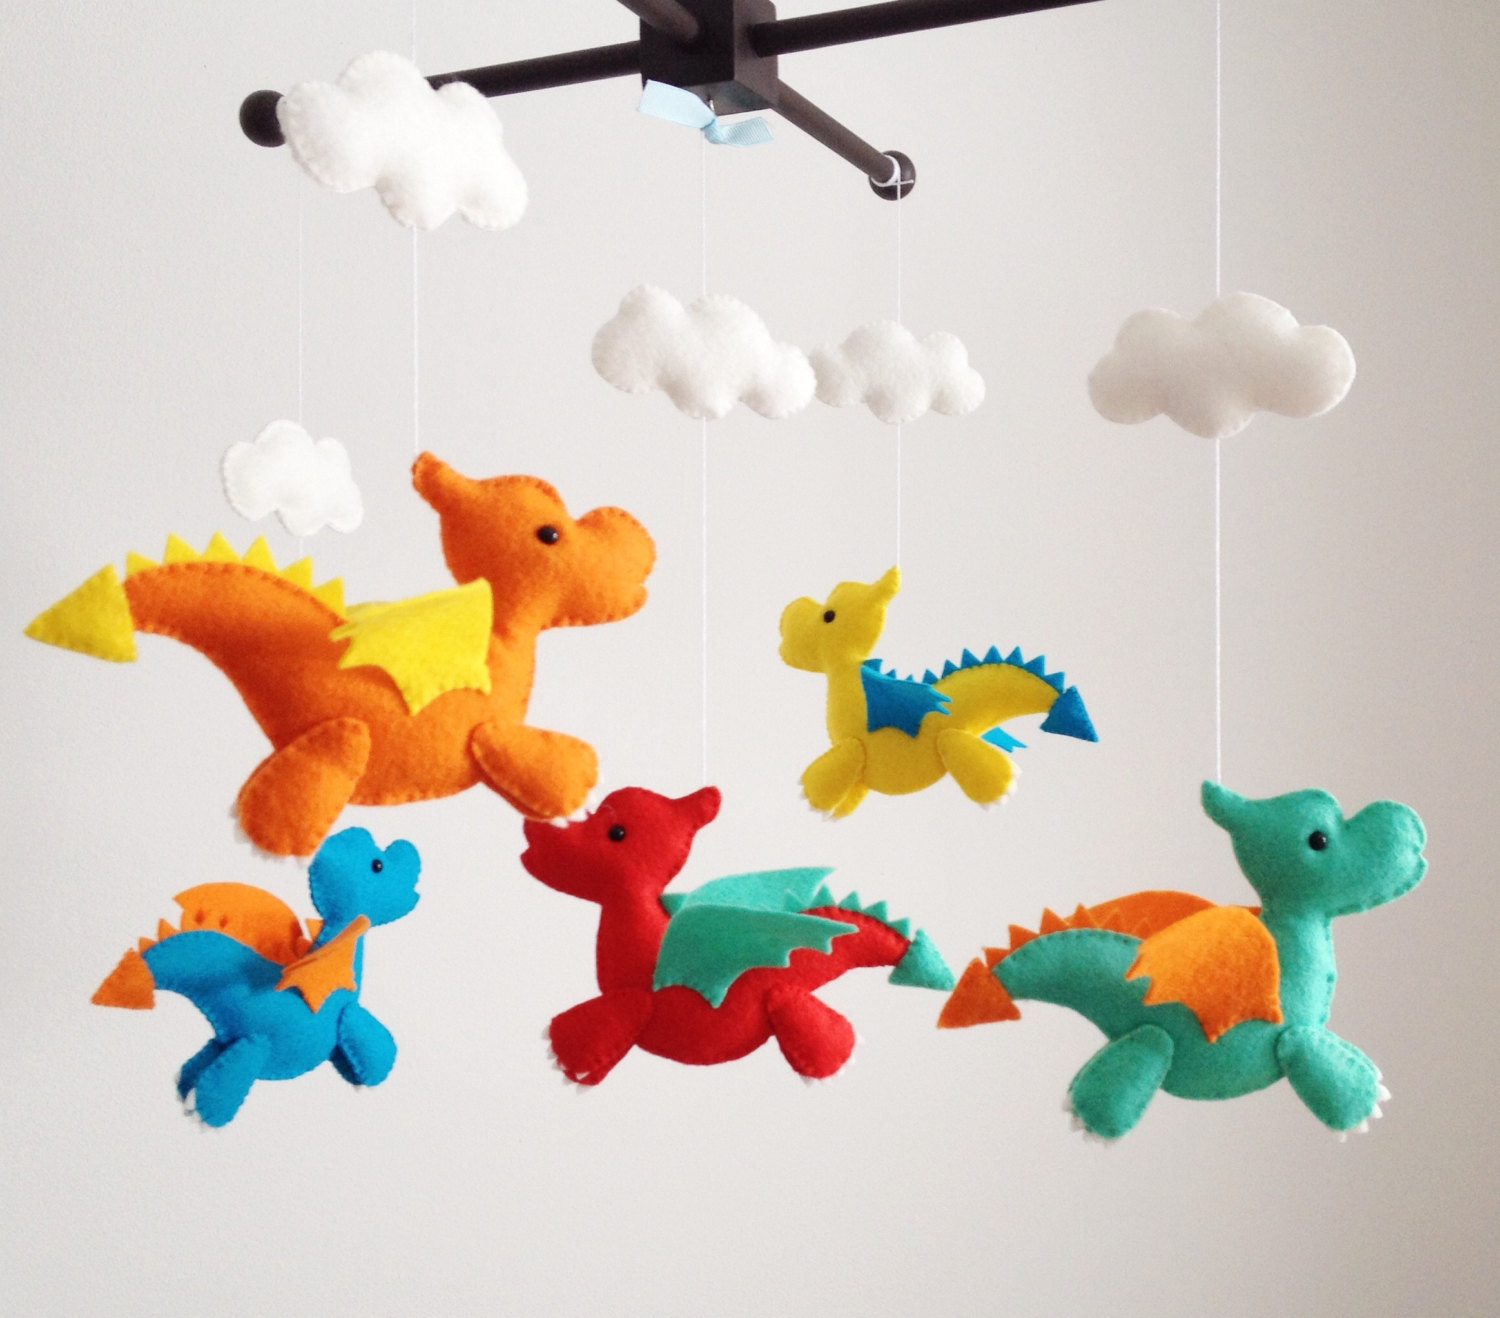 Adorable handmade baby crib mobiles let your baby fall asleep dreaming of  Cinderella. Or ninjas.